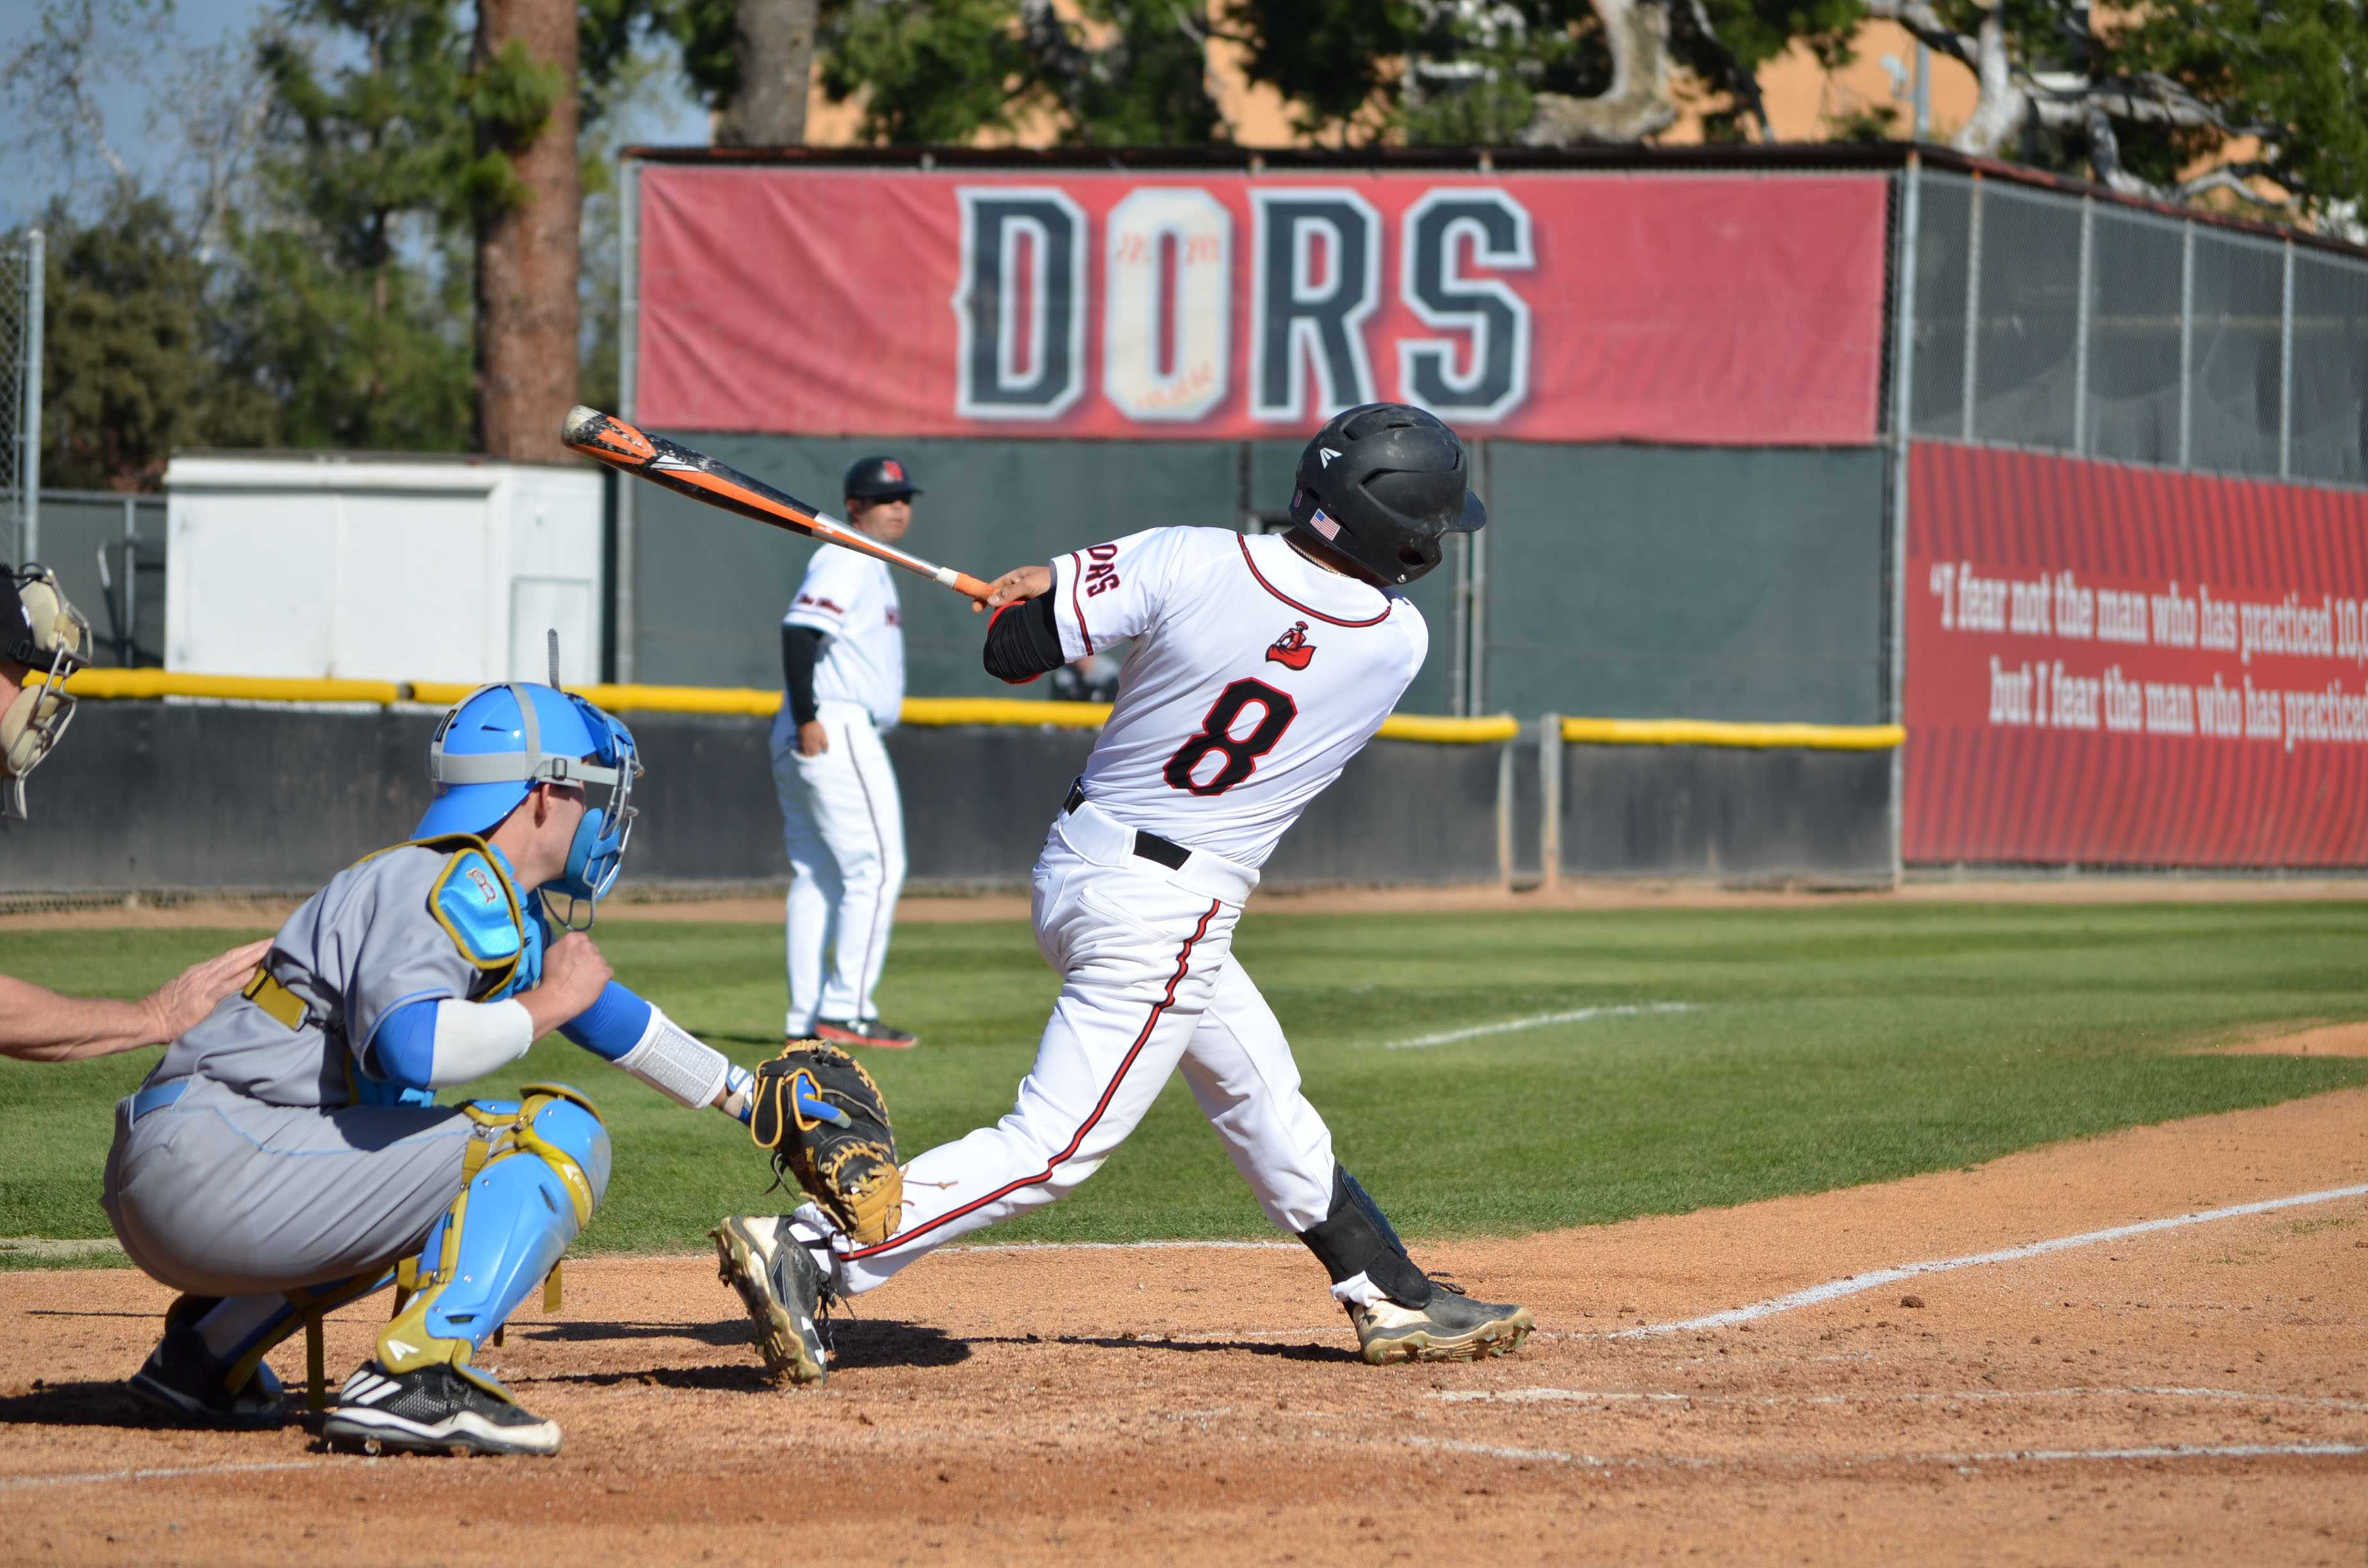 Senior shortstop Fred Smith, #8, grounds out to third base in the third inning against UCLA on Tuesday, Feb. 28, 2017. Smith went on to hit a home run during the sixth inning. Photo credit: Anthony Martinez